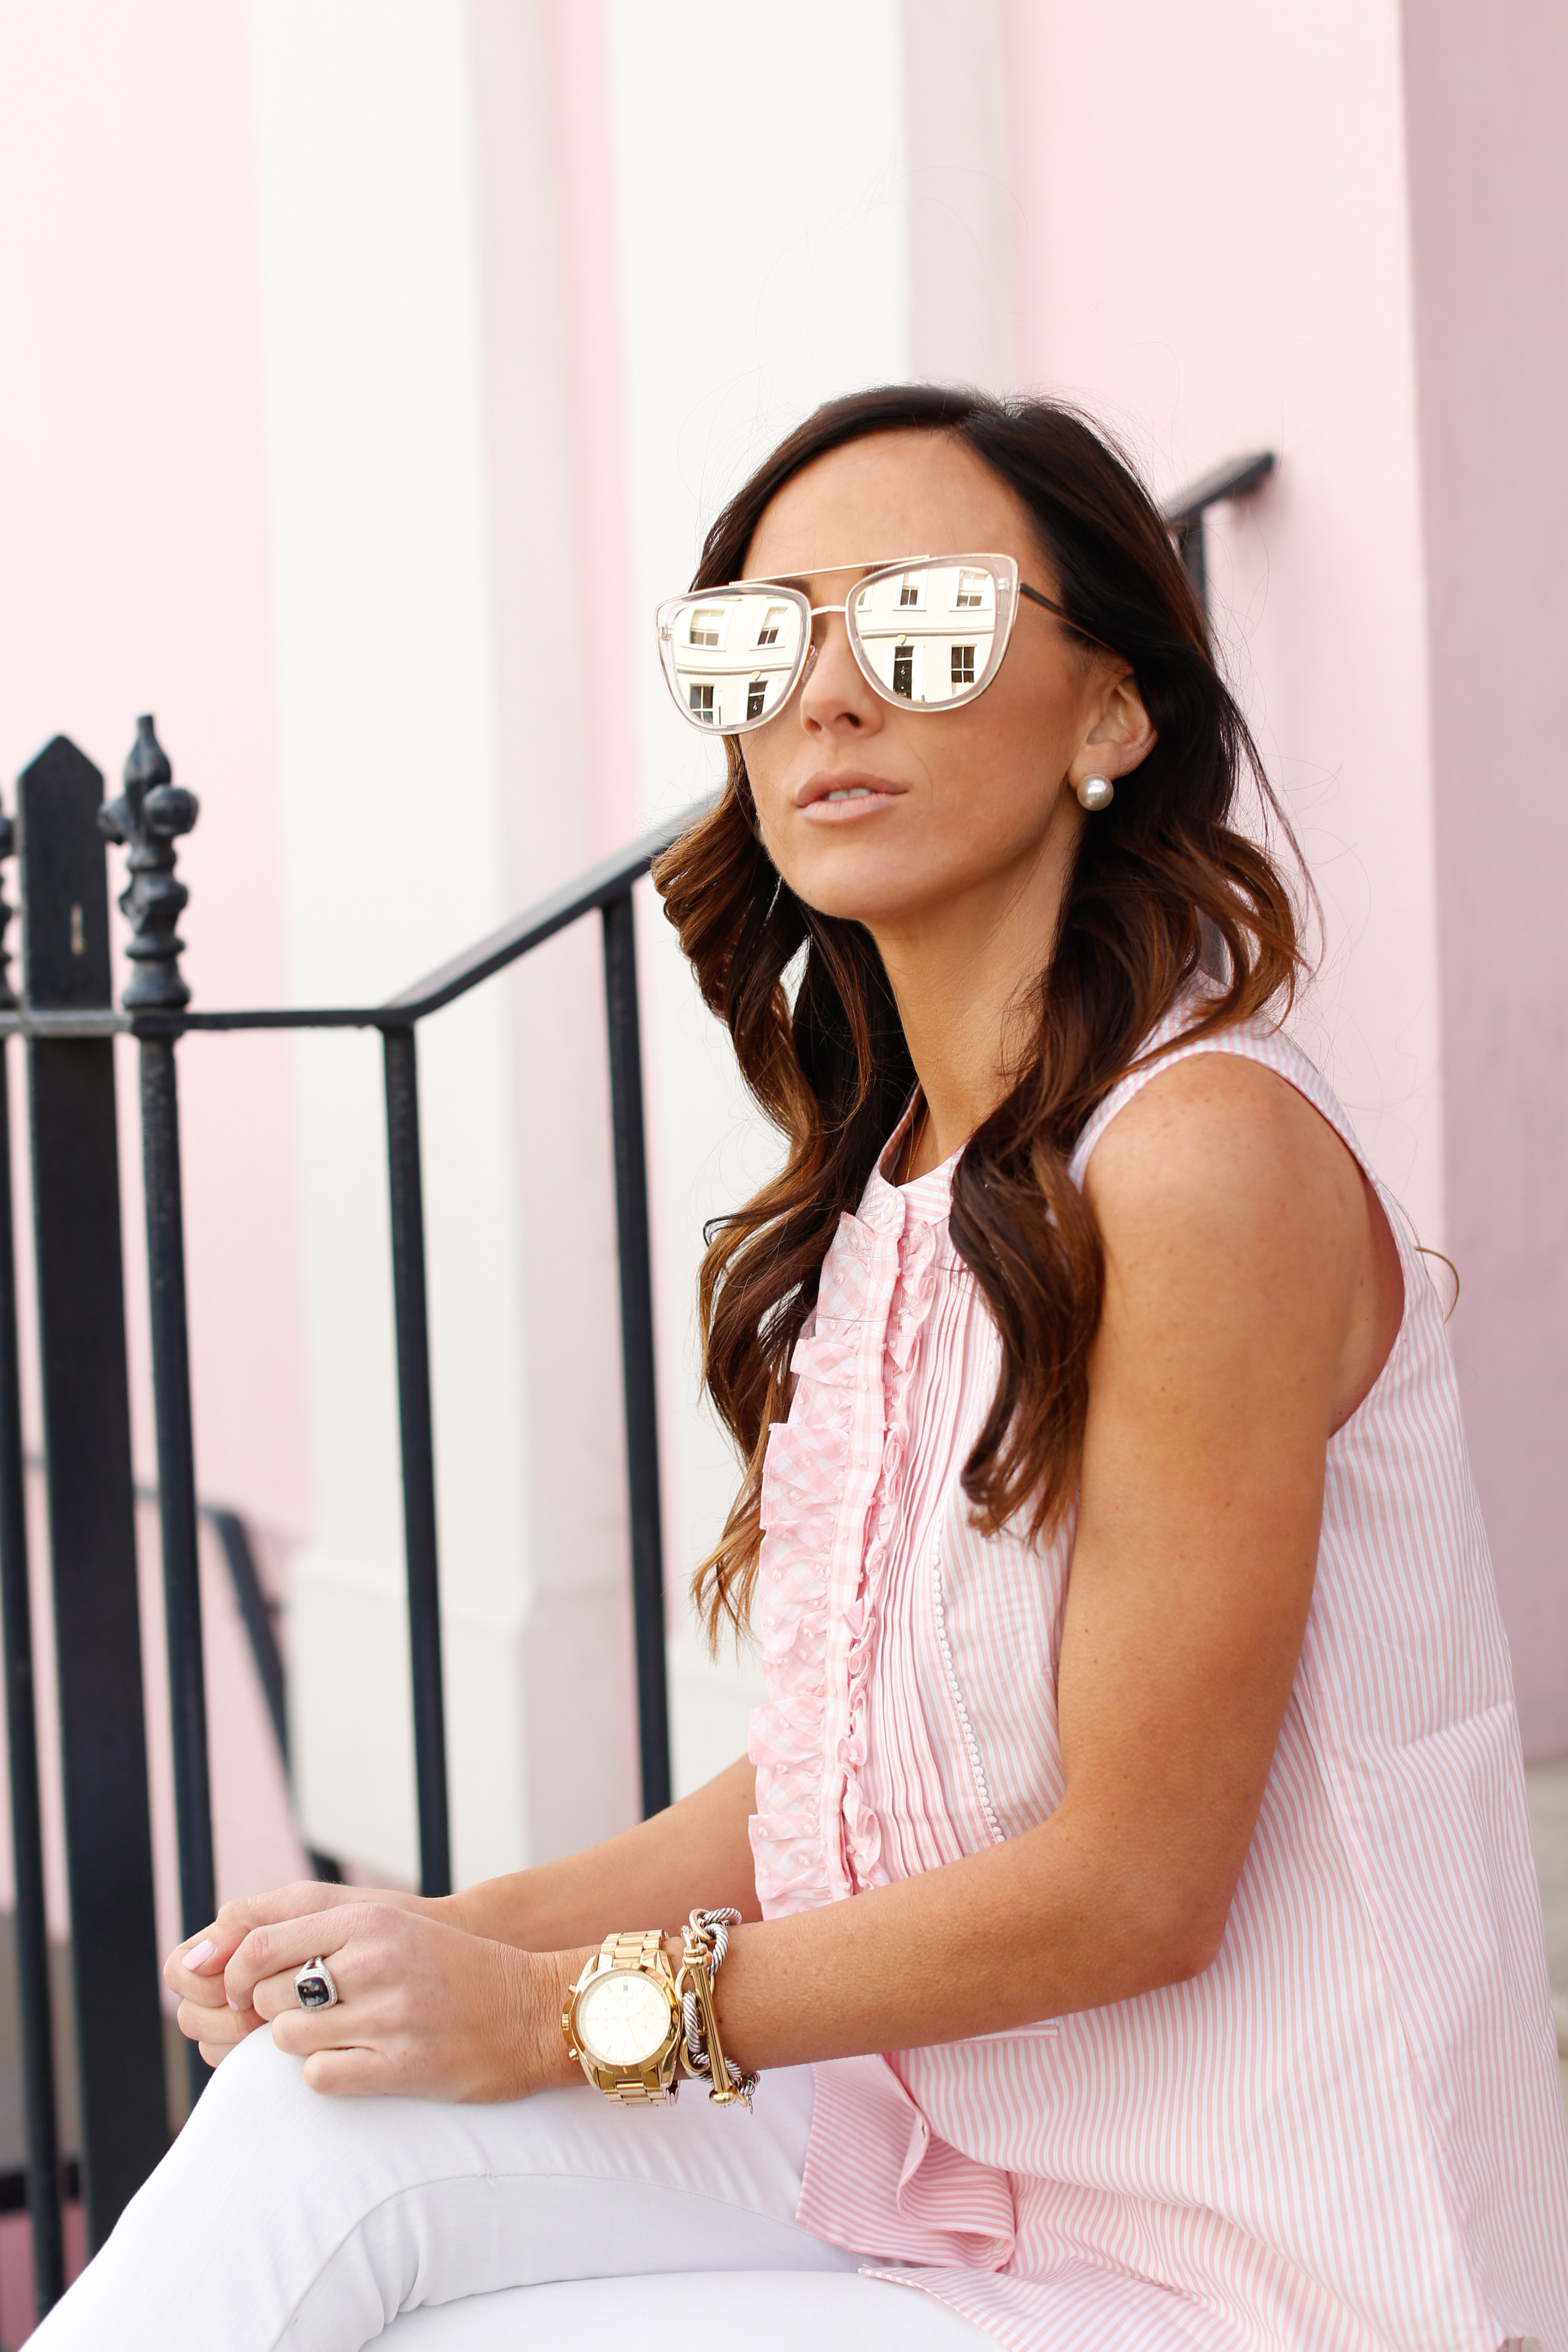 london, holland park, spring outfit, spring outfit inspiration, pink in london